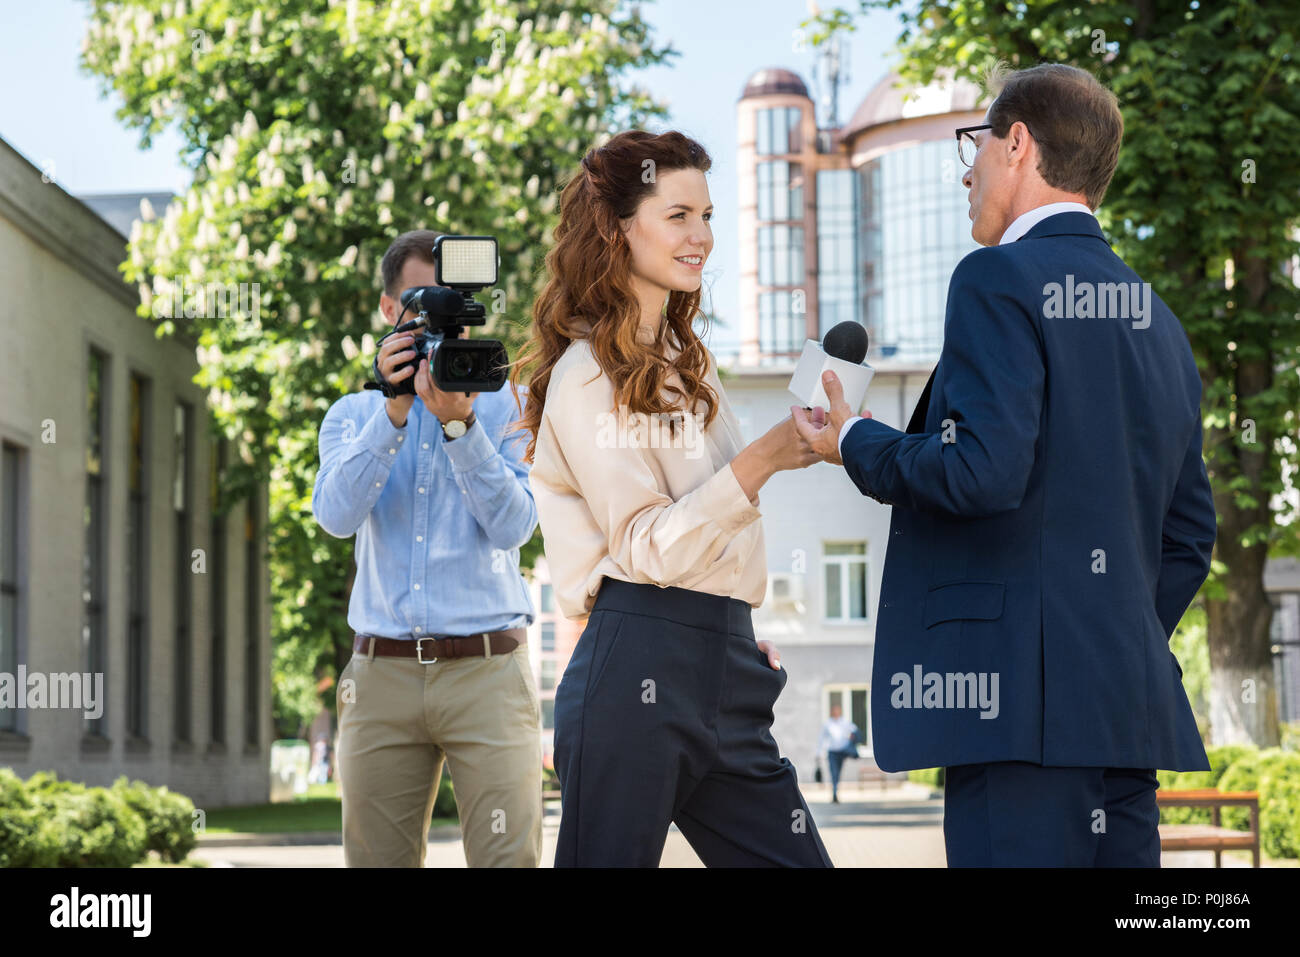 professional cameraman and news reporter interviewing businessman - Stock Image